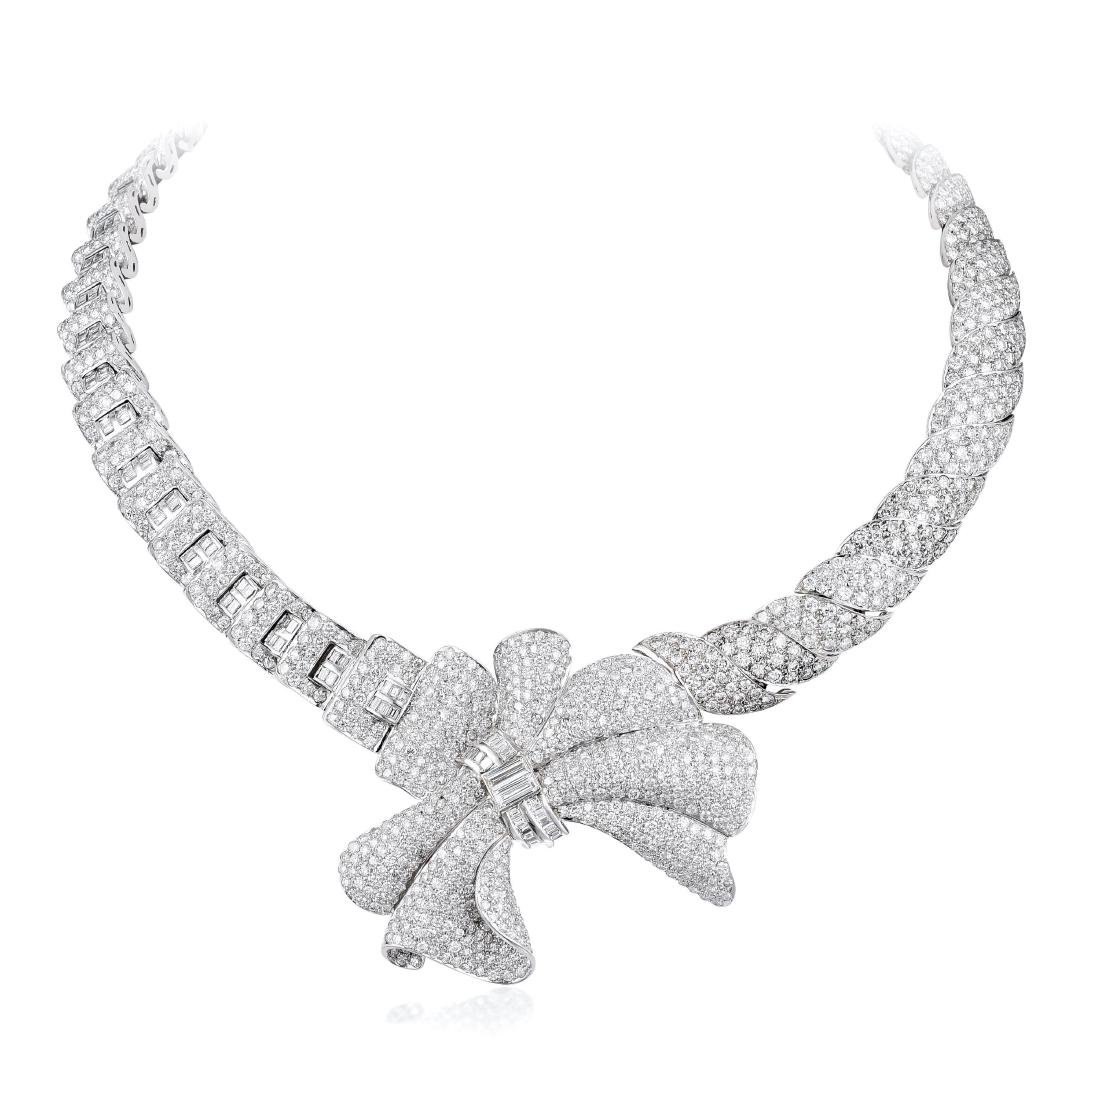 A Platinum Diamond Necklace and Brooch/Enhancer Set